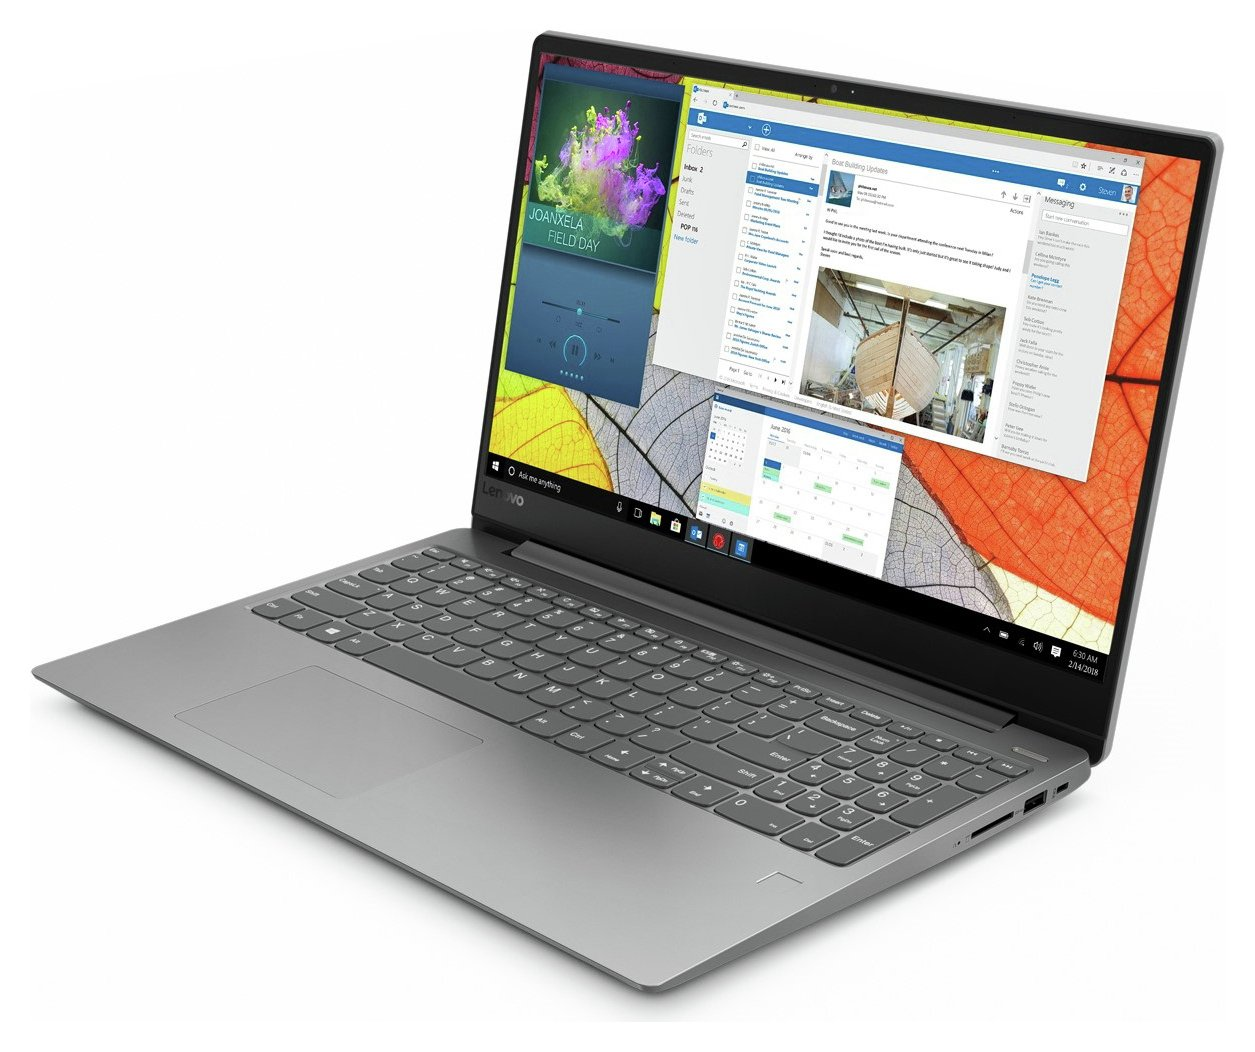 Lenovo IdeaPad 330S 15.6 Inch AMD A9 4GB 128GB Laptop from Lenovo